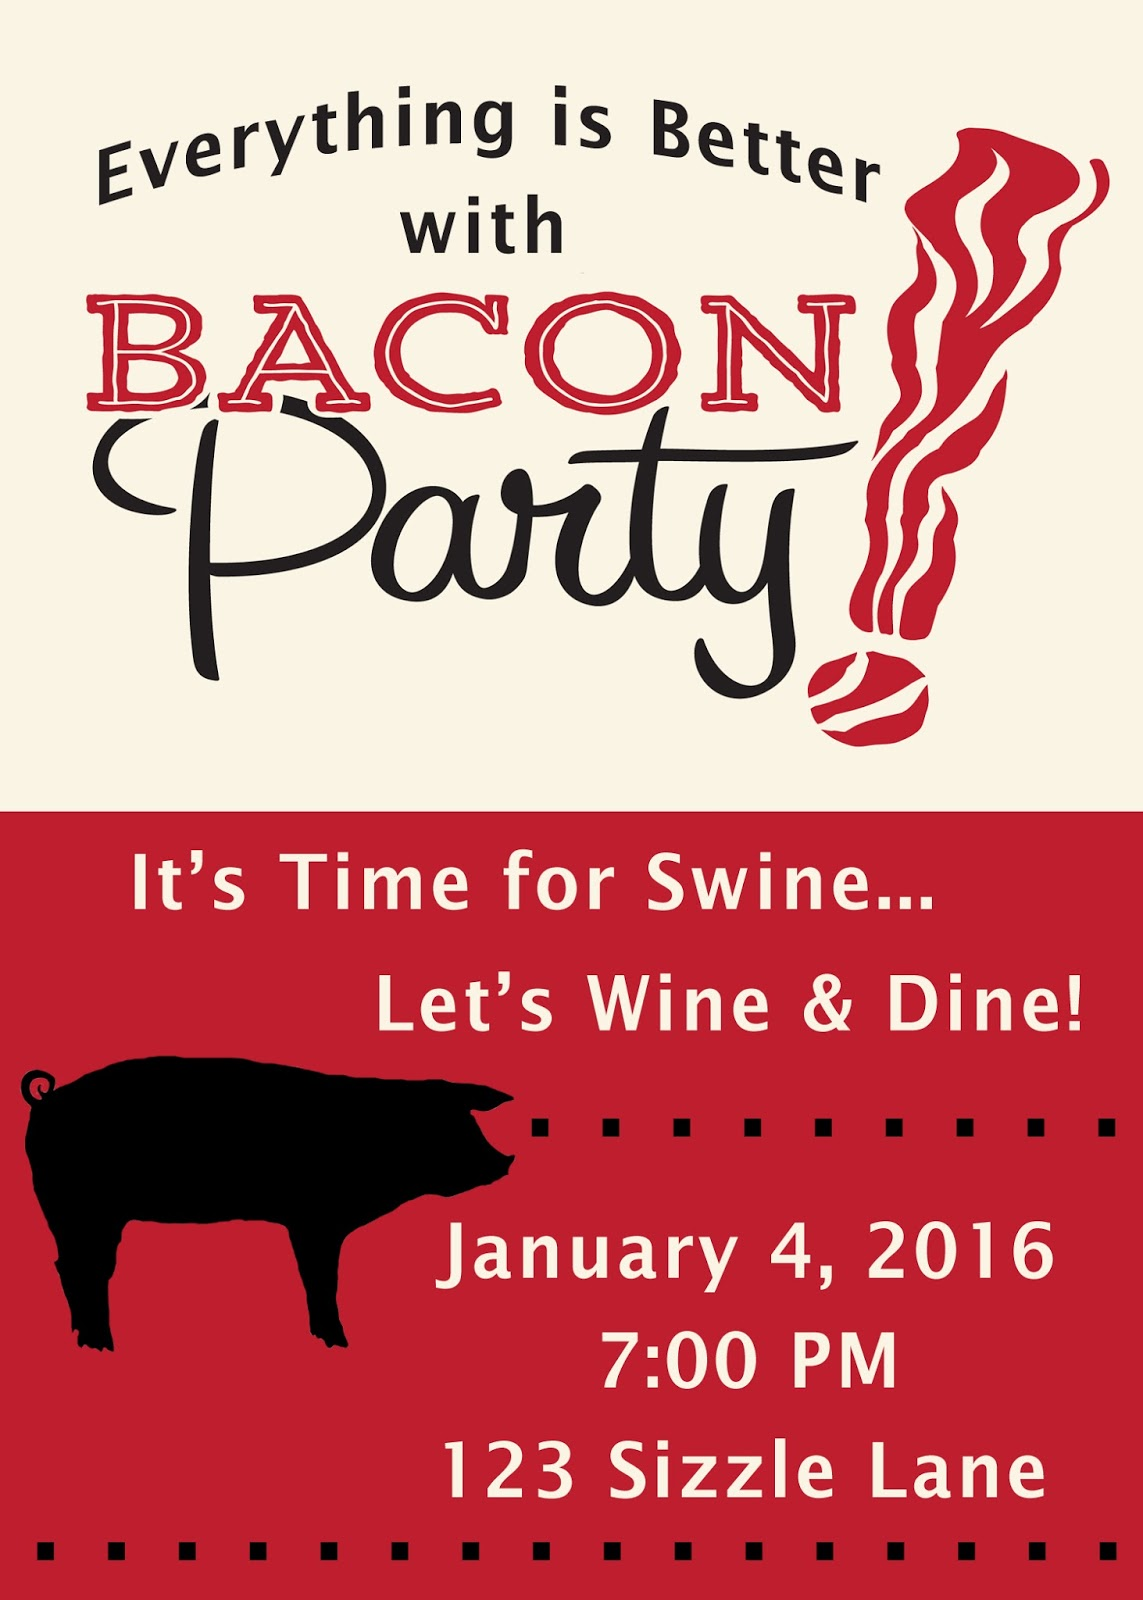 Invite and Delight: Everything is Better with Bacon Party!